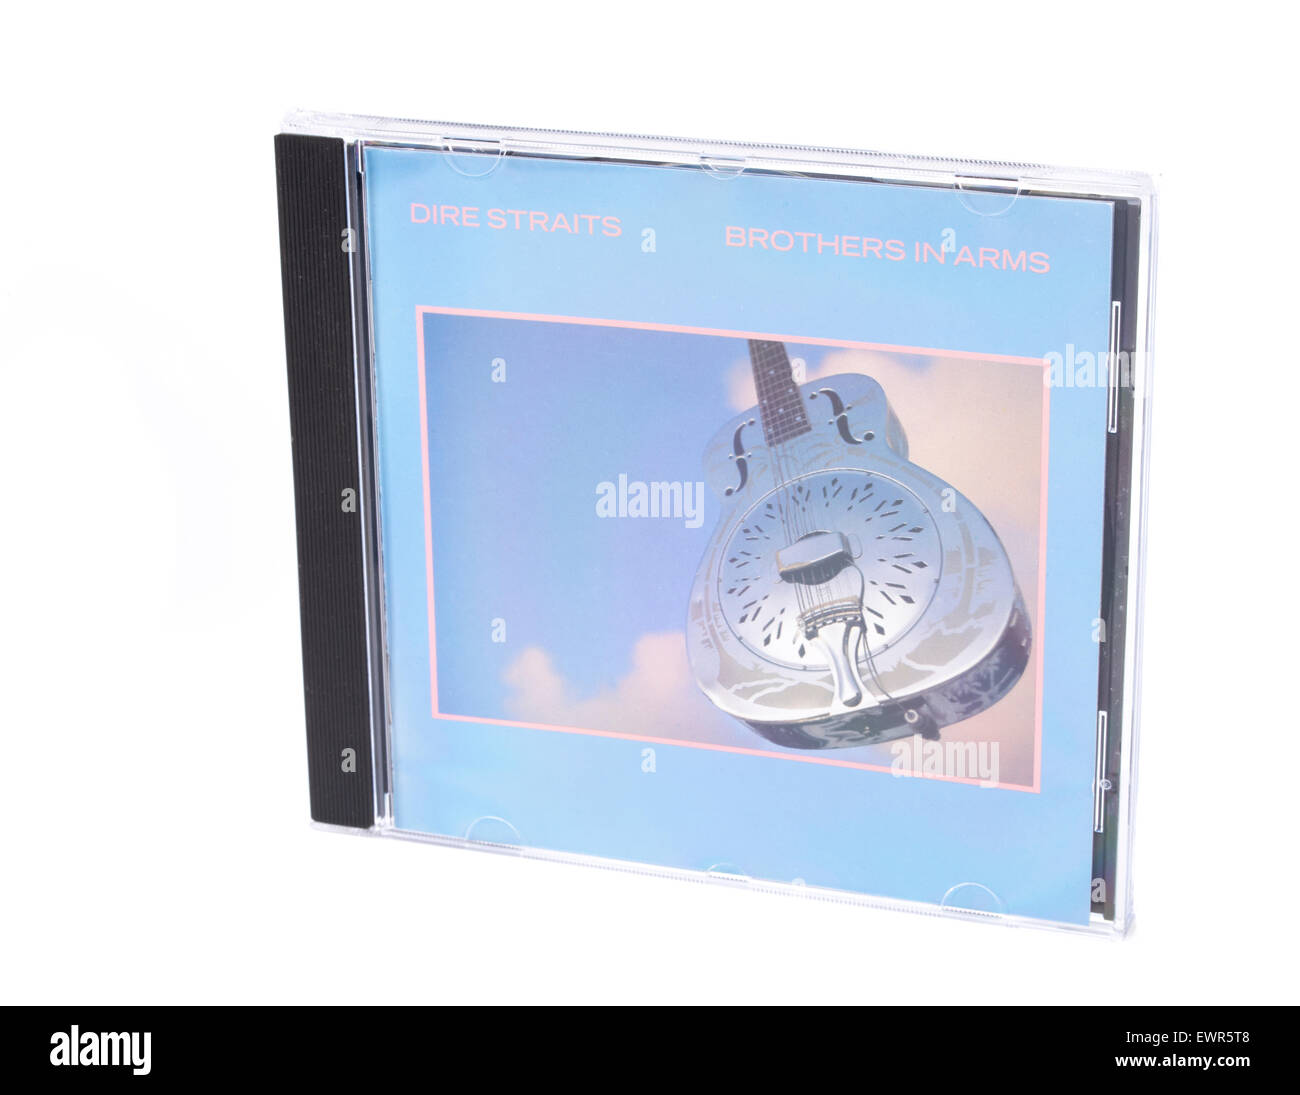 Brothers in Arms Compact Disc by Dire Straits 1985 the first CD to sell 1 million copies. - Stock Image